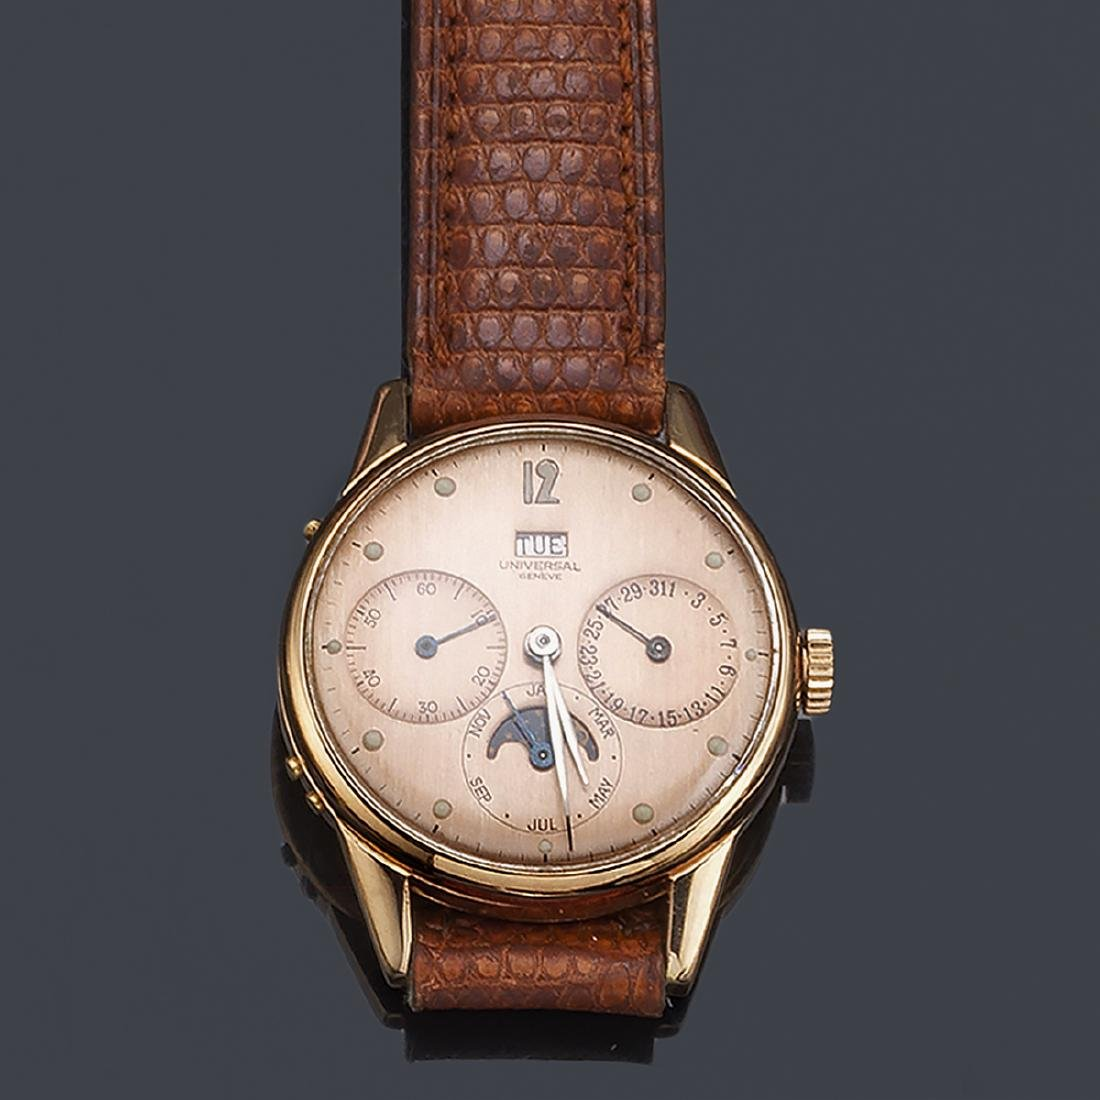 UNIVERSAL. Triple calendar and moonphase watch for men